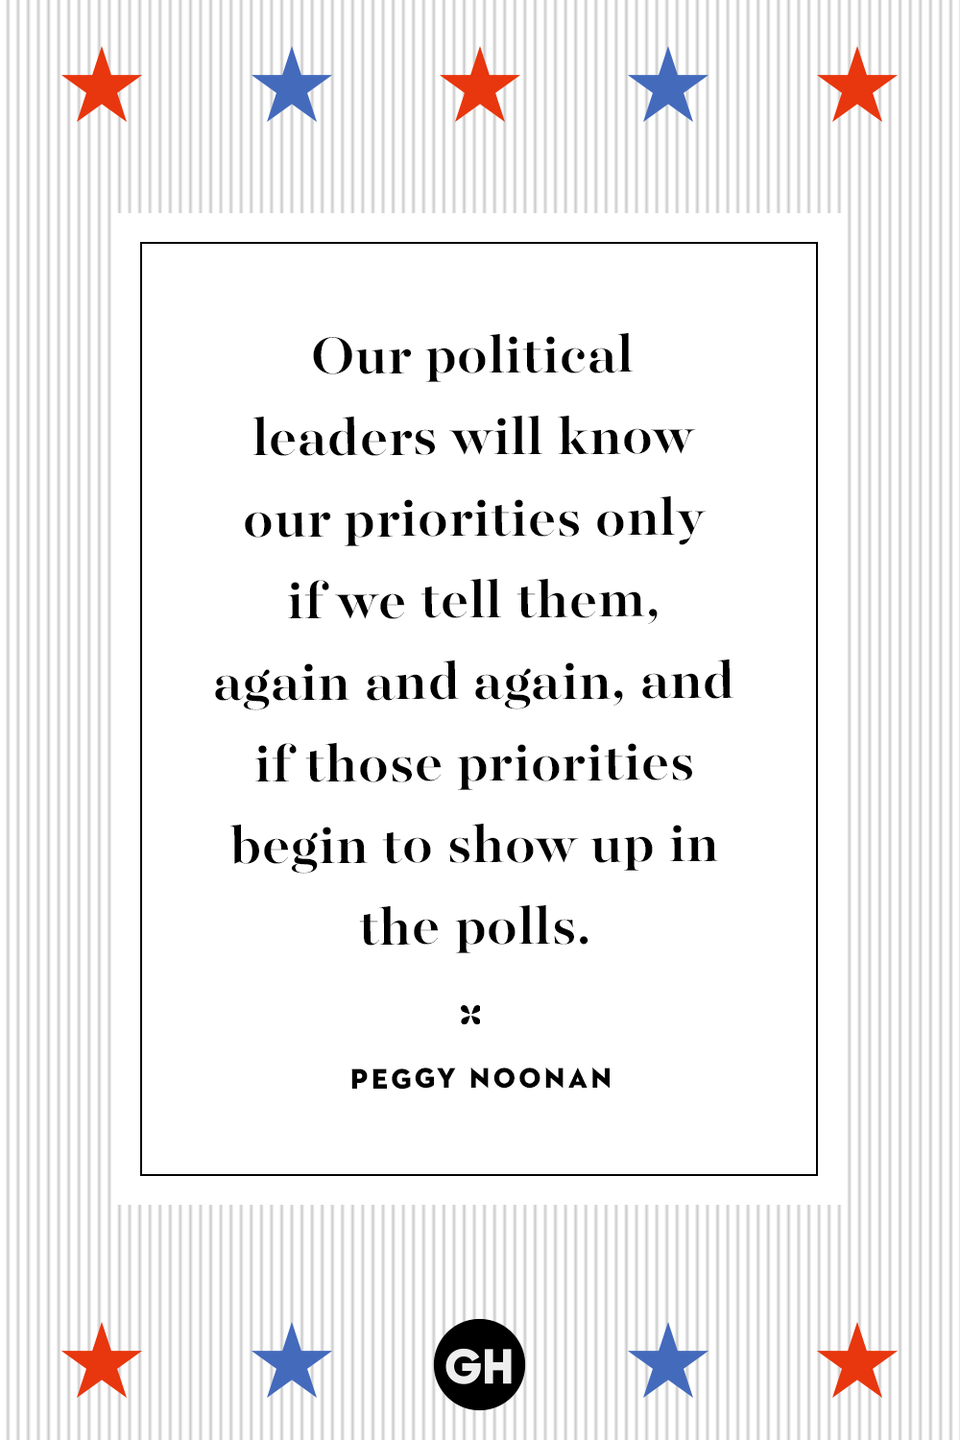 <p>Our political leaders will know our priorities only if we tell them, again and again, and if those priorities begin to show up in the polls.</p>